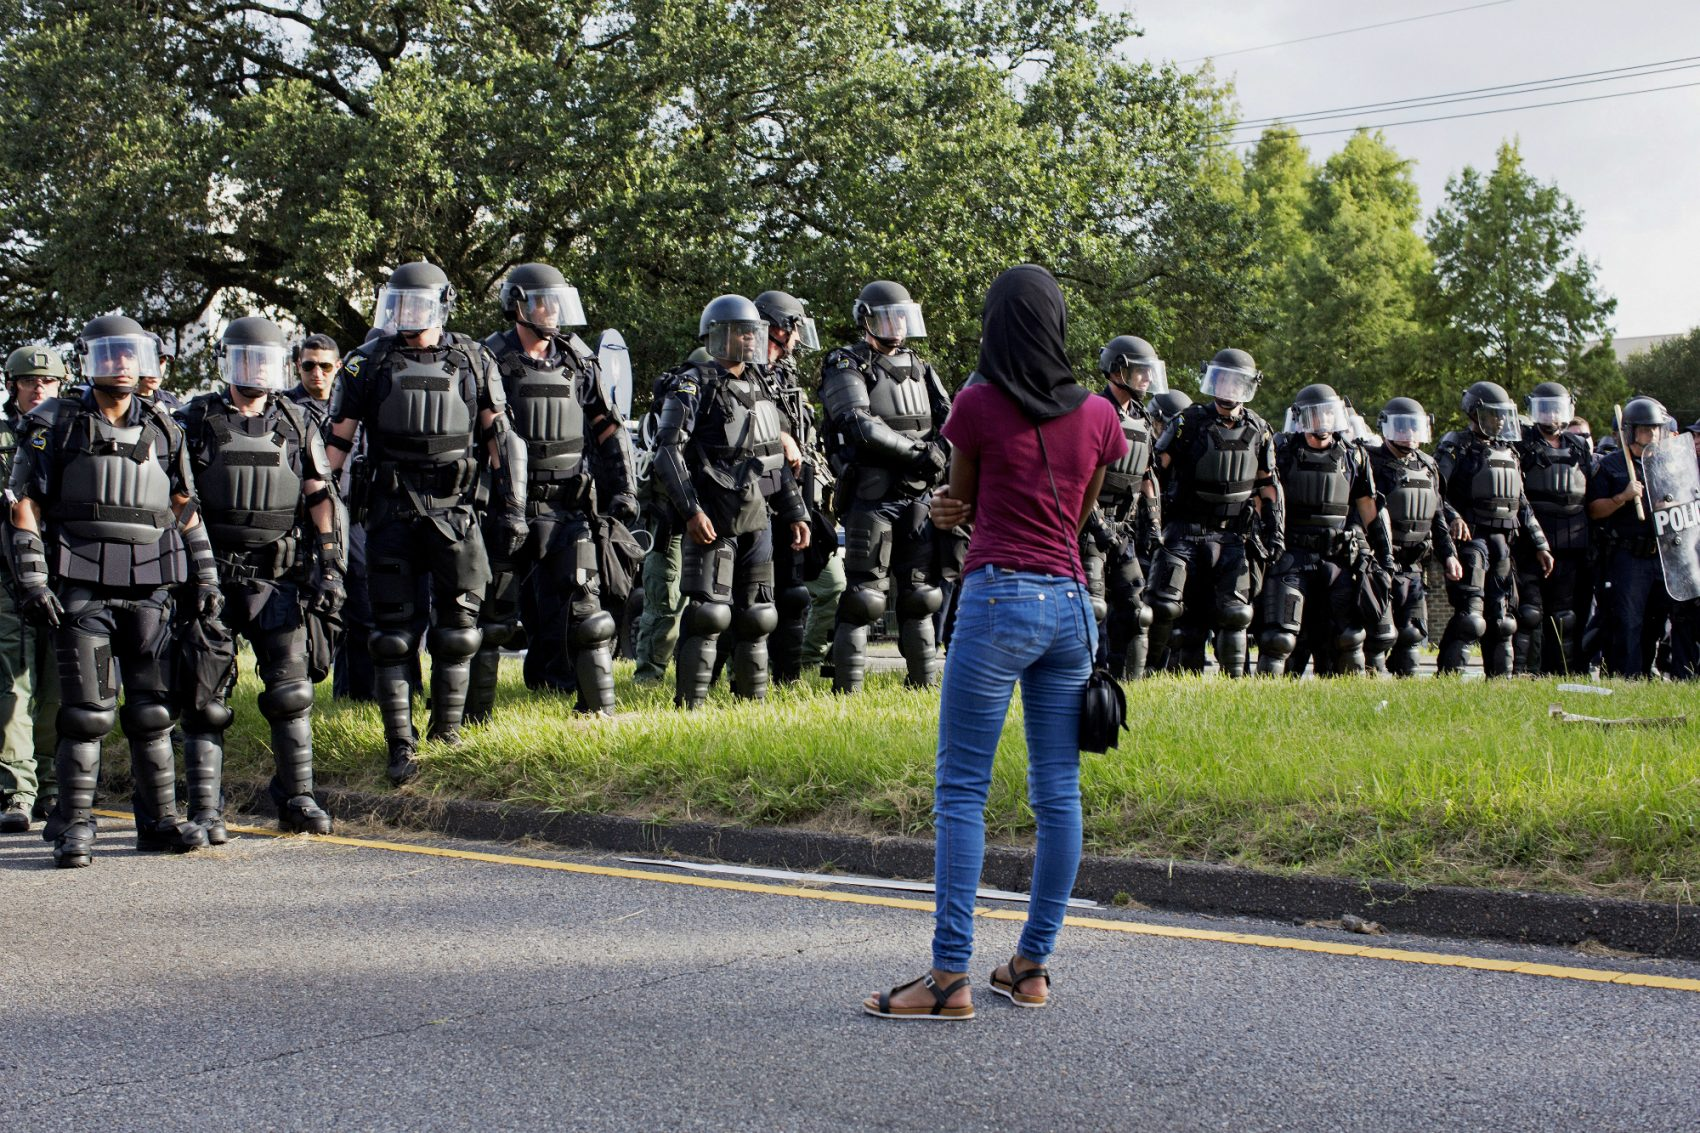 A protester watches as police in riot gear clear the street of protesters in front of the Baton Rouge Police Department headquarters in Baton Rouge, La., Saturday, July 9, 2016. (Max Becherer/AP)